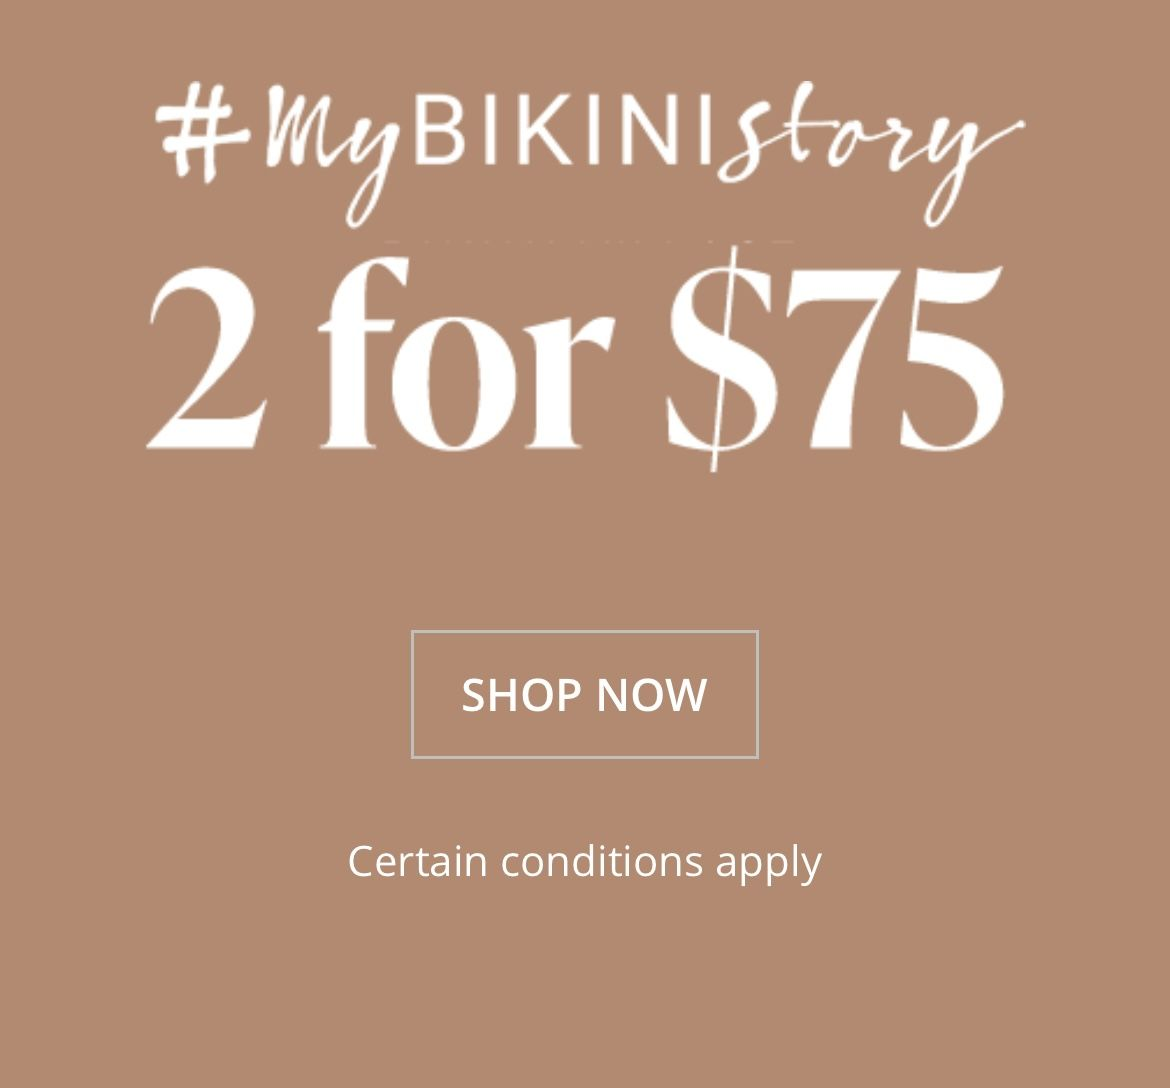 2 for $75 body shop